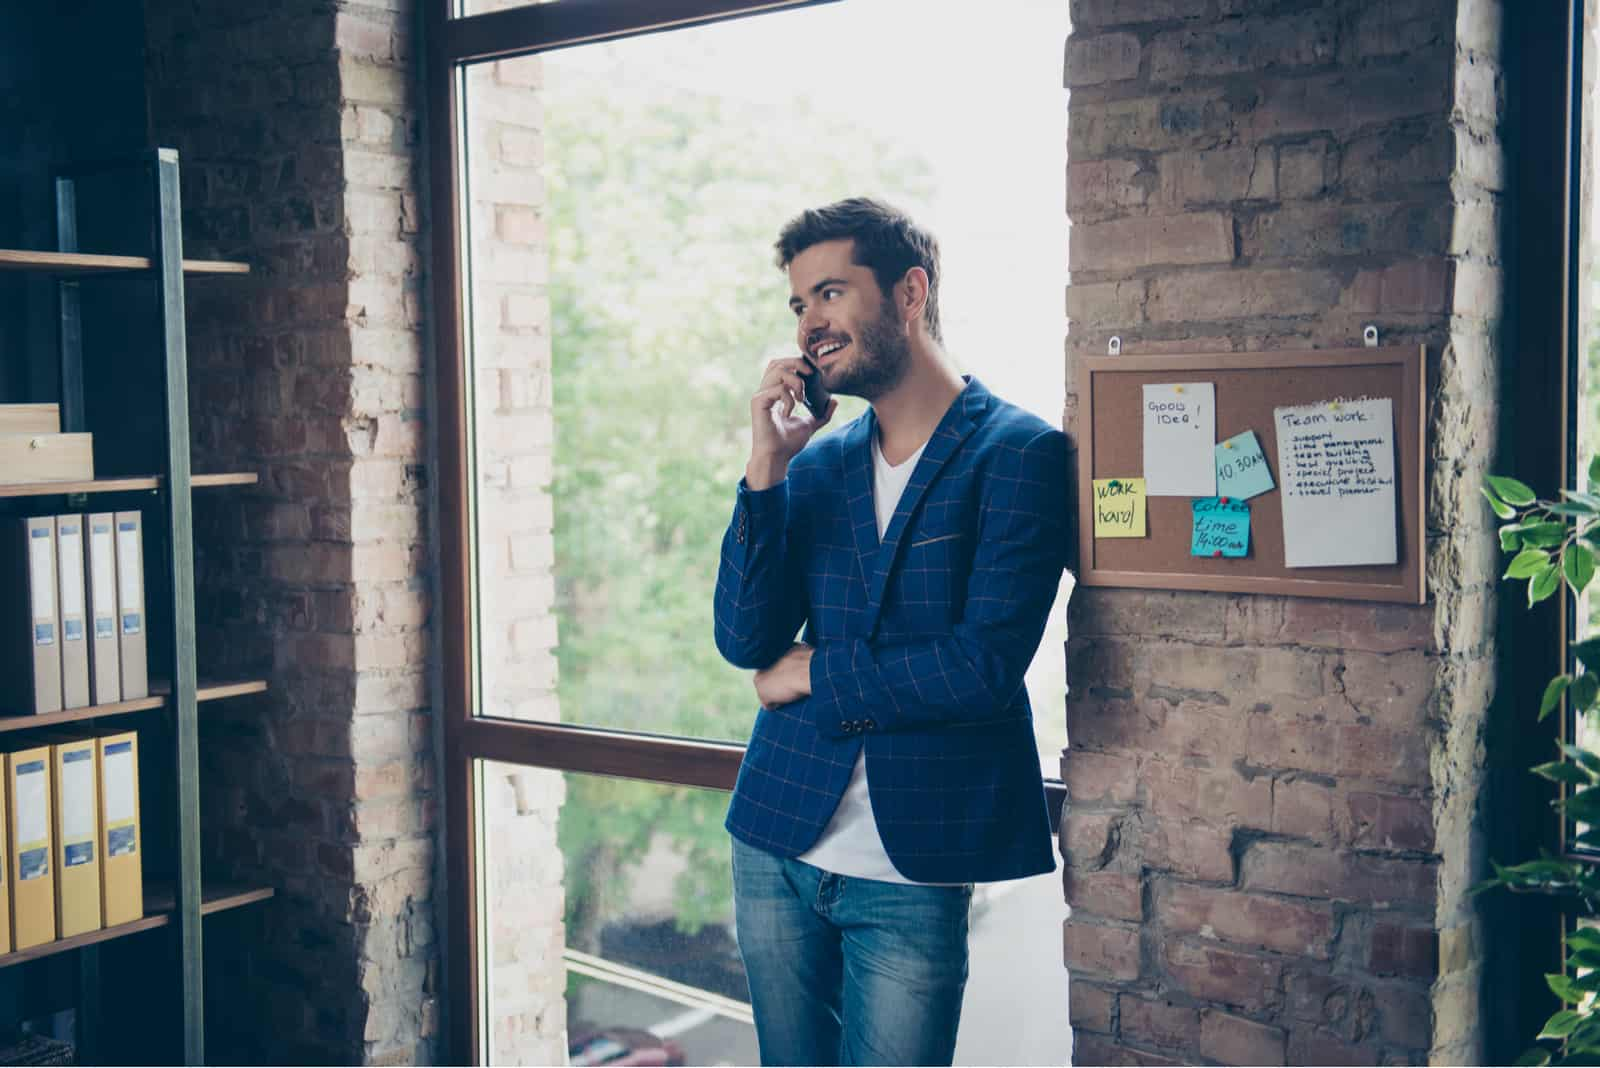 a smiling man stands in the office and talks on the phone